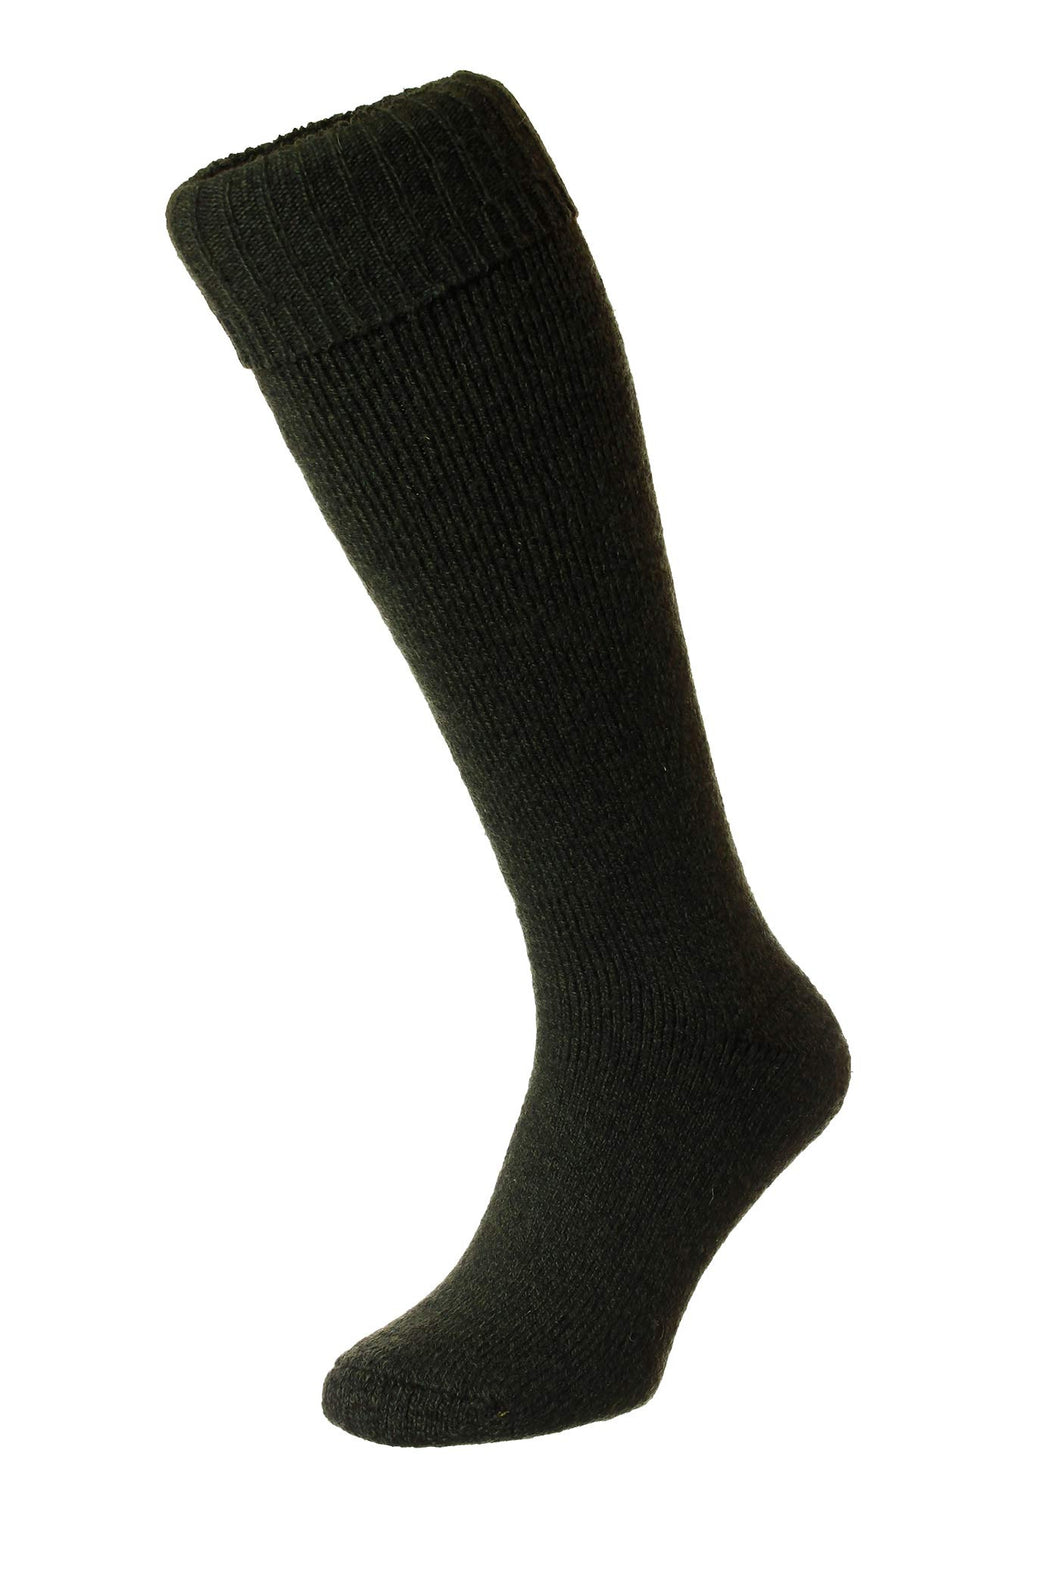 Hj Wellington Sock 608 K